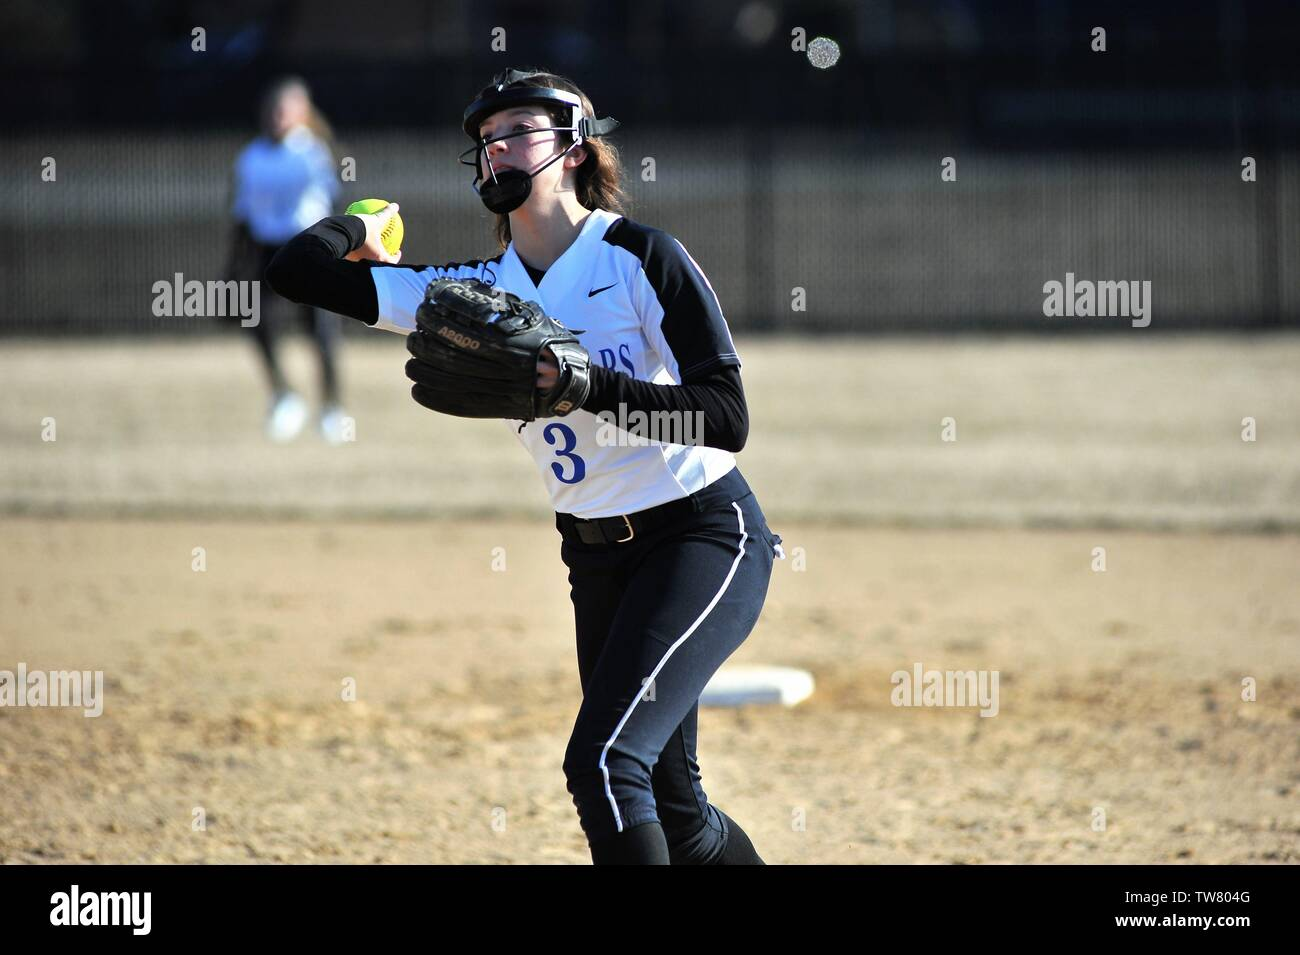 Second baseman throwing out an opposing batter after fielding a ground ball. USA. - Stock Image